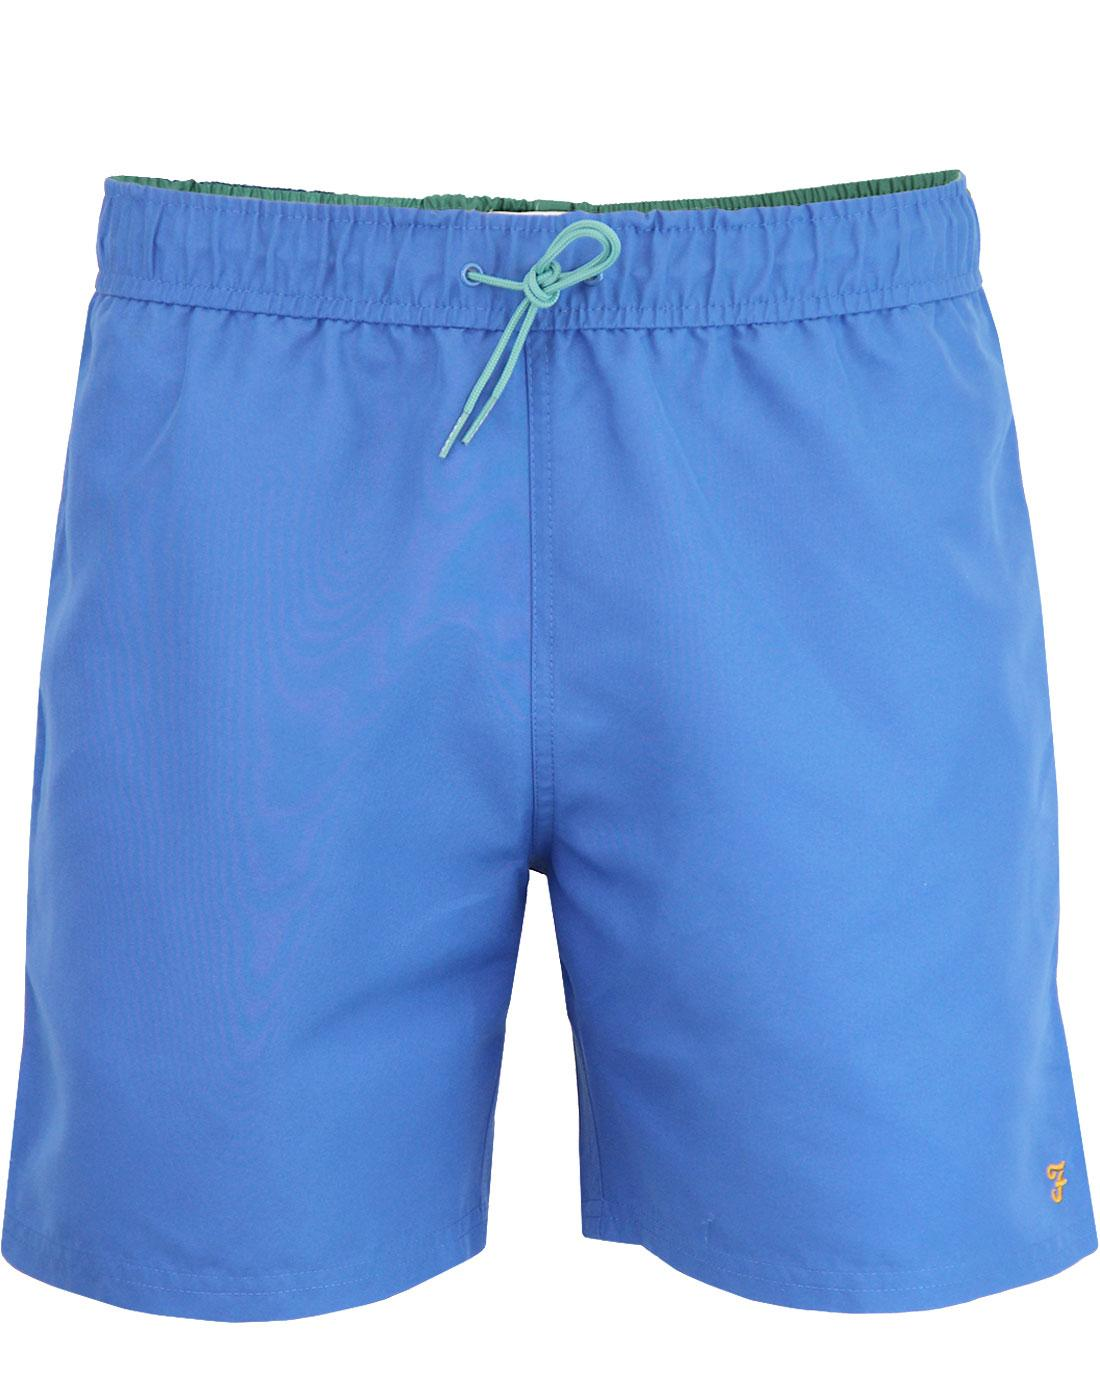 Colbert FARAH Retro Contrast Trim Swim Shorts BLUE